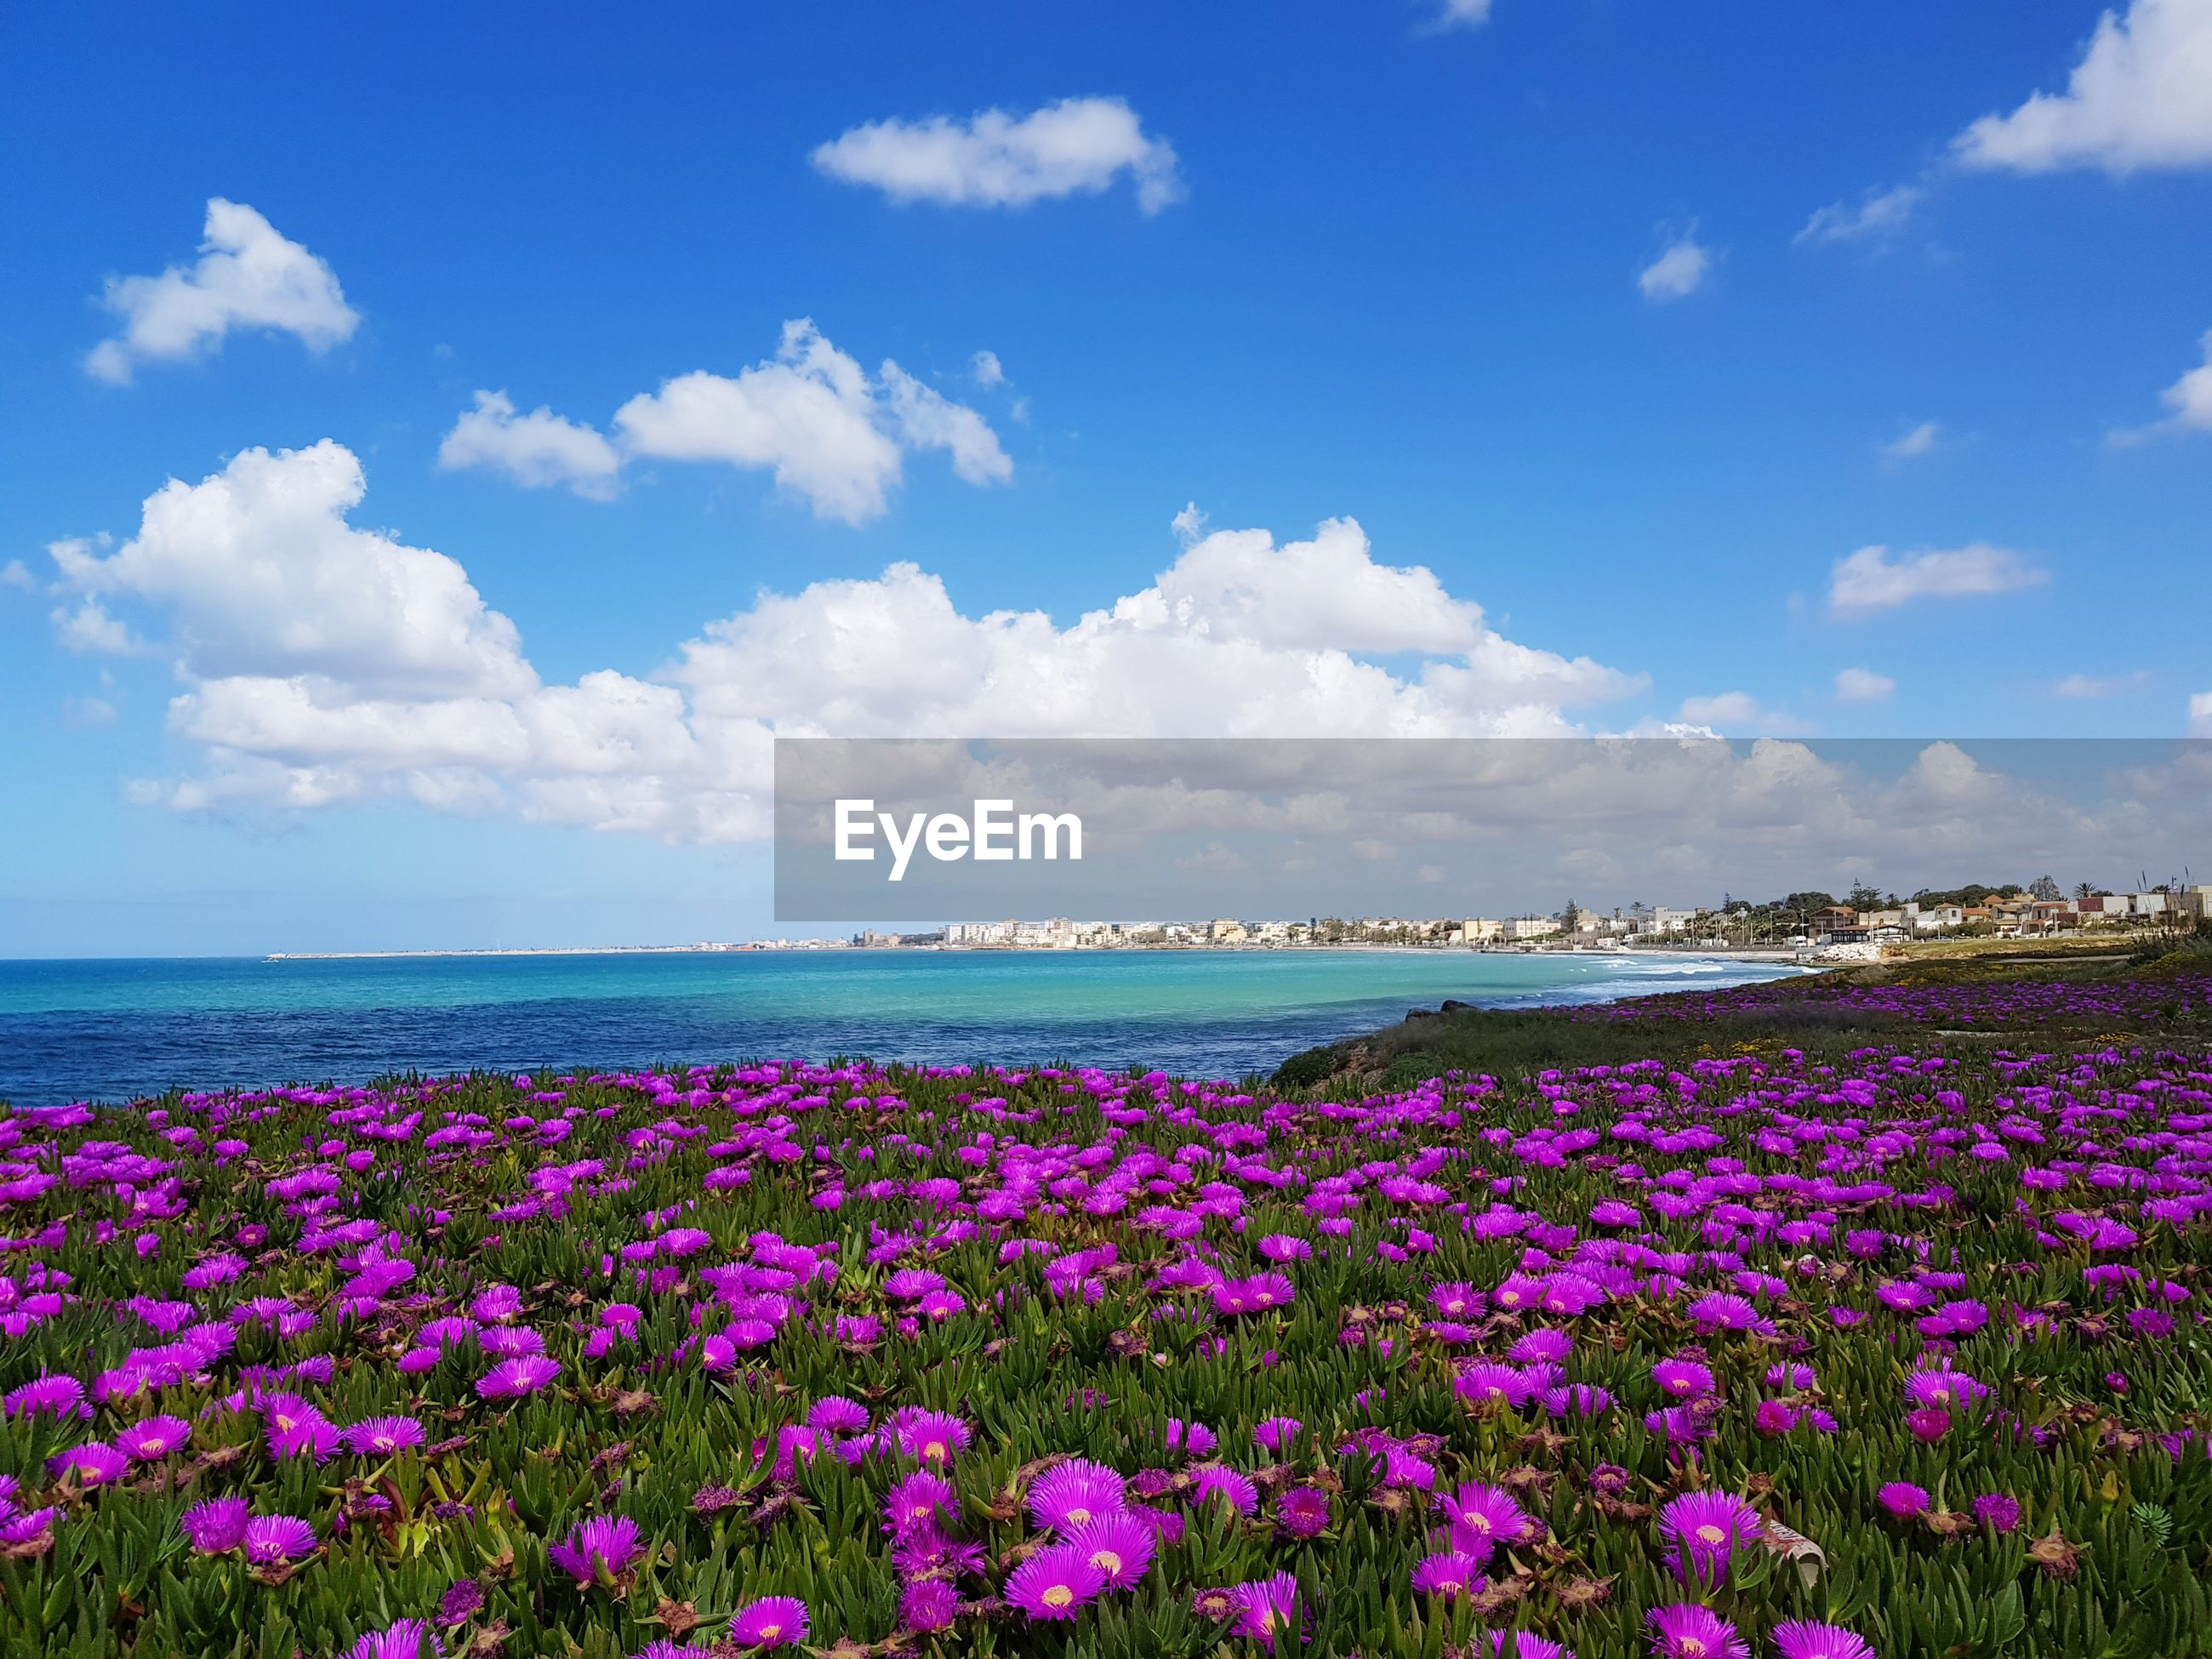 SCENIC VIEW OF PINK FLOWERS ON SEA SHORE AGAINST SKY